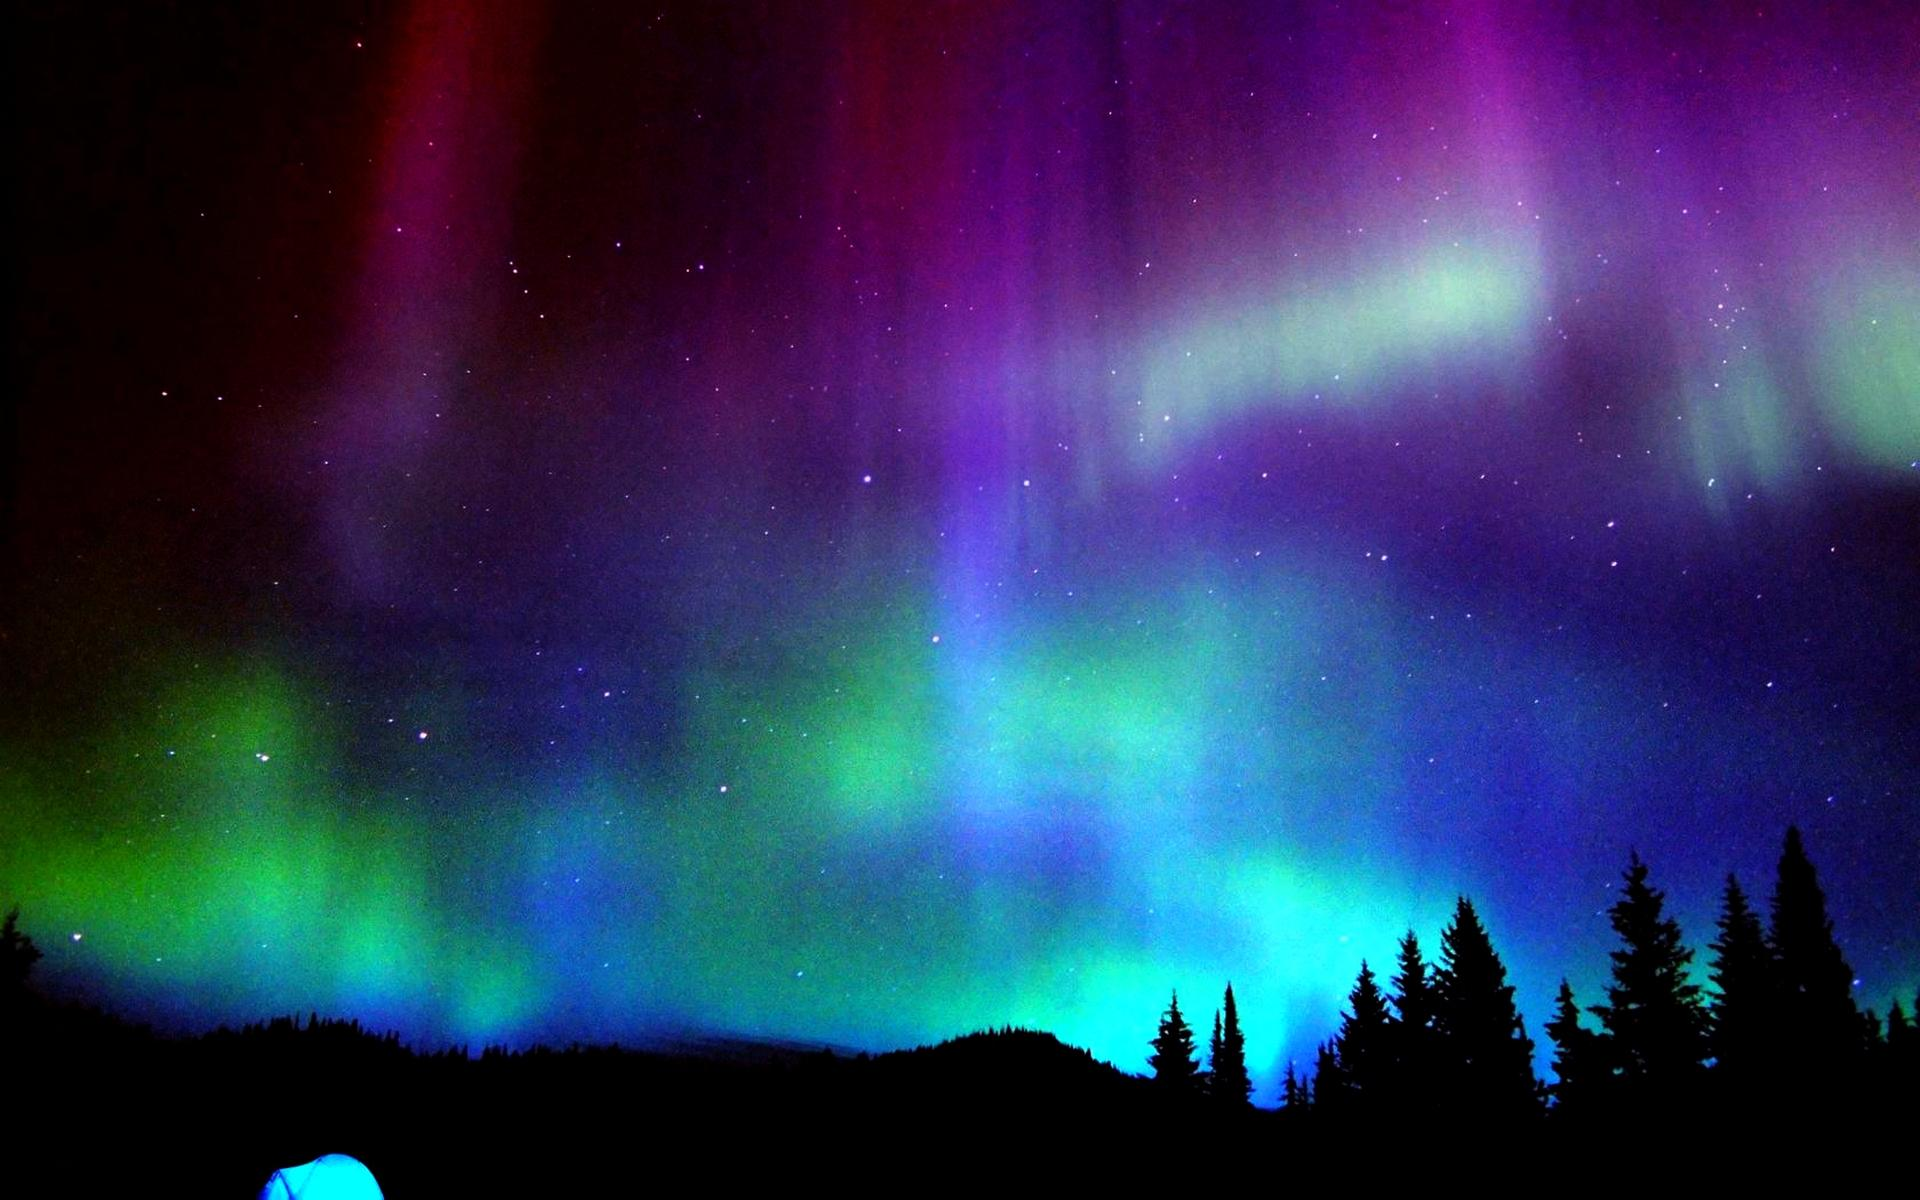 Aurora Borealis Hd Wallpaper Wallpapersafari Glitter Wallpaper Creepypasta Choose from Our Pictures  Collections Wallpapers [x-site.ml]